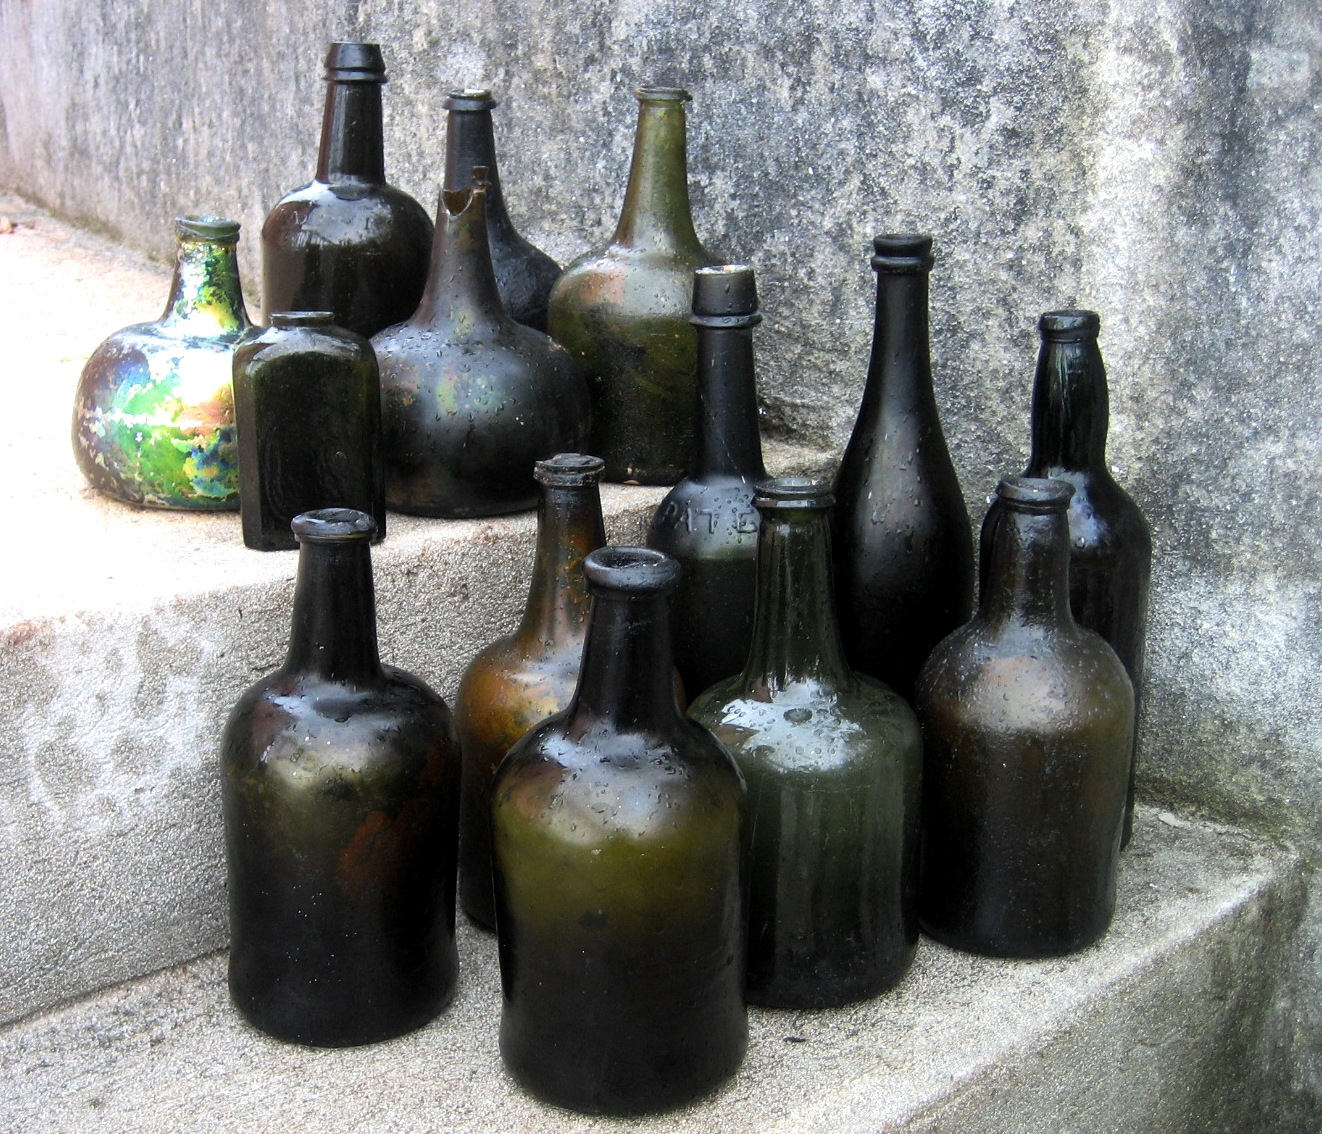 Dating black glass bottles